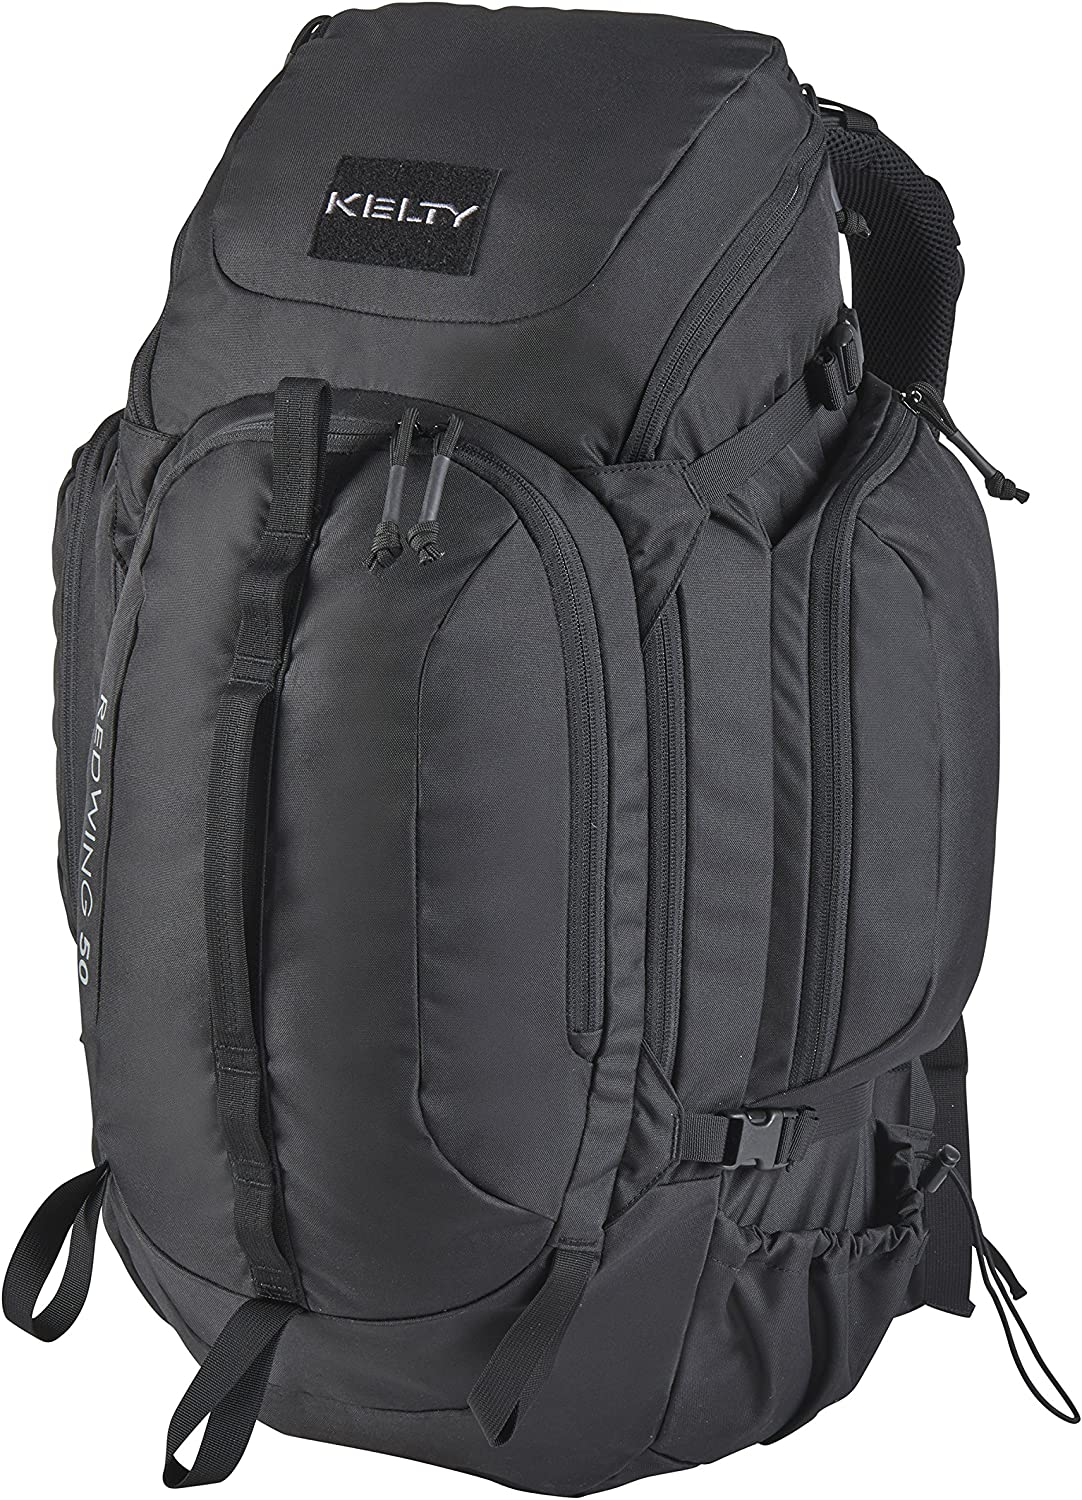 Kelty Redwing 50 Tactical